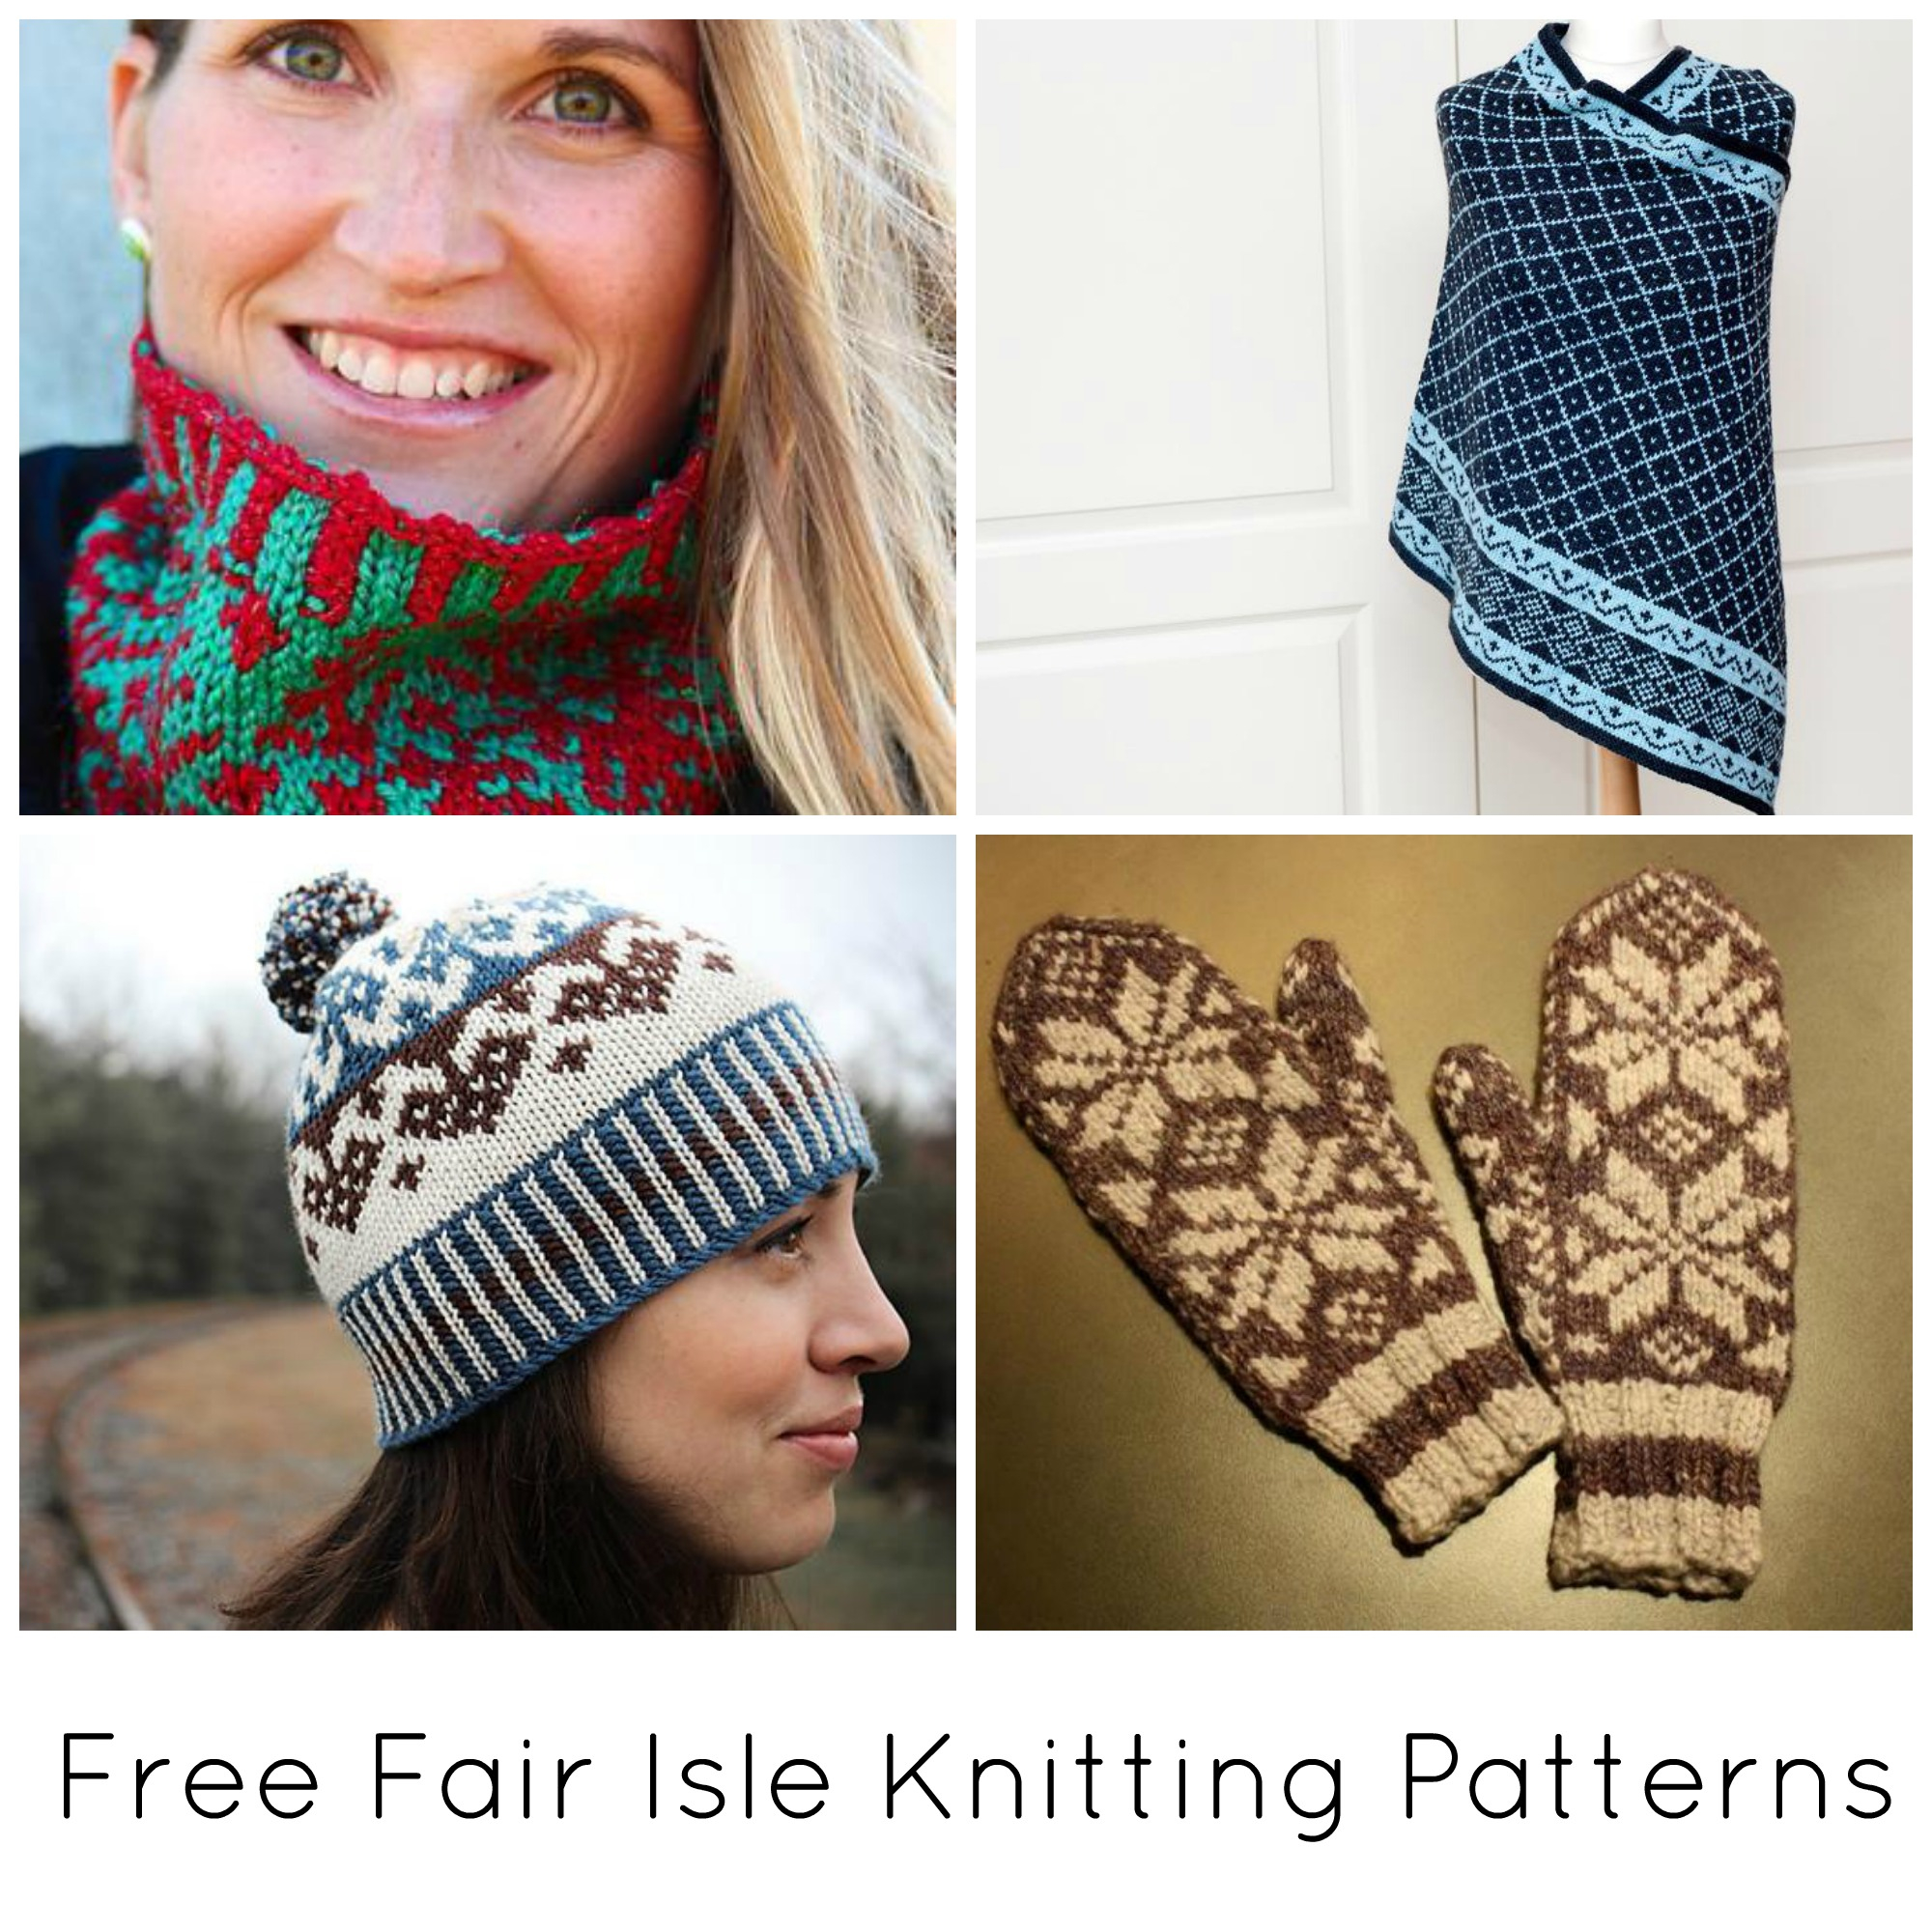 Color Knitting Patterns Fair Isles 10 Free Fair Isle Knitting Patterns On Craftsy